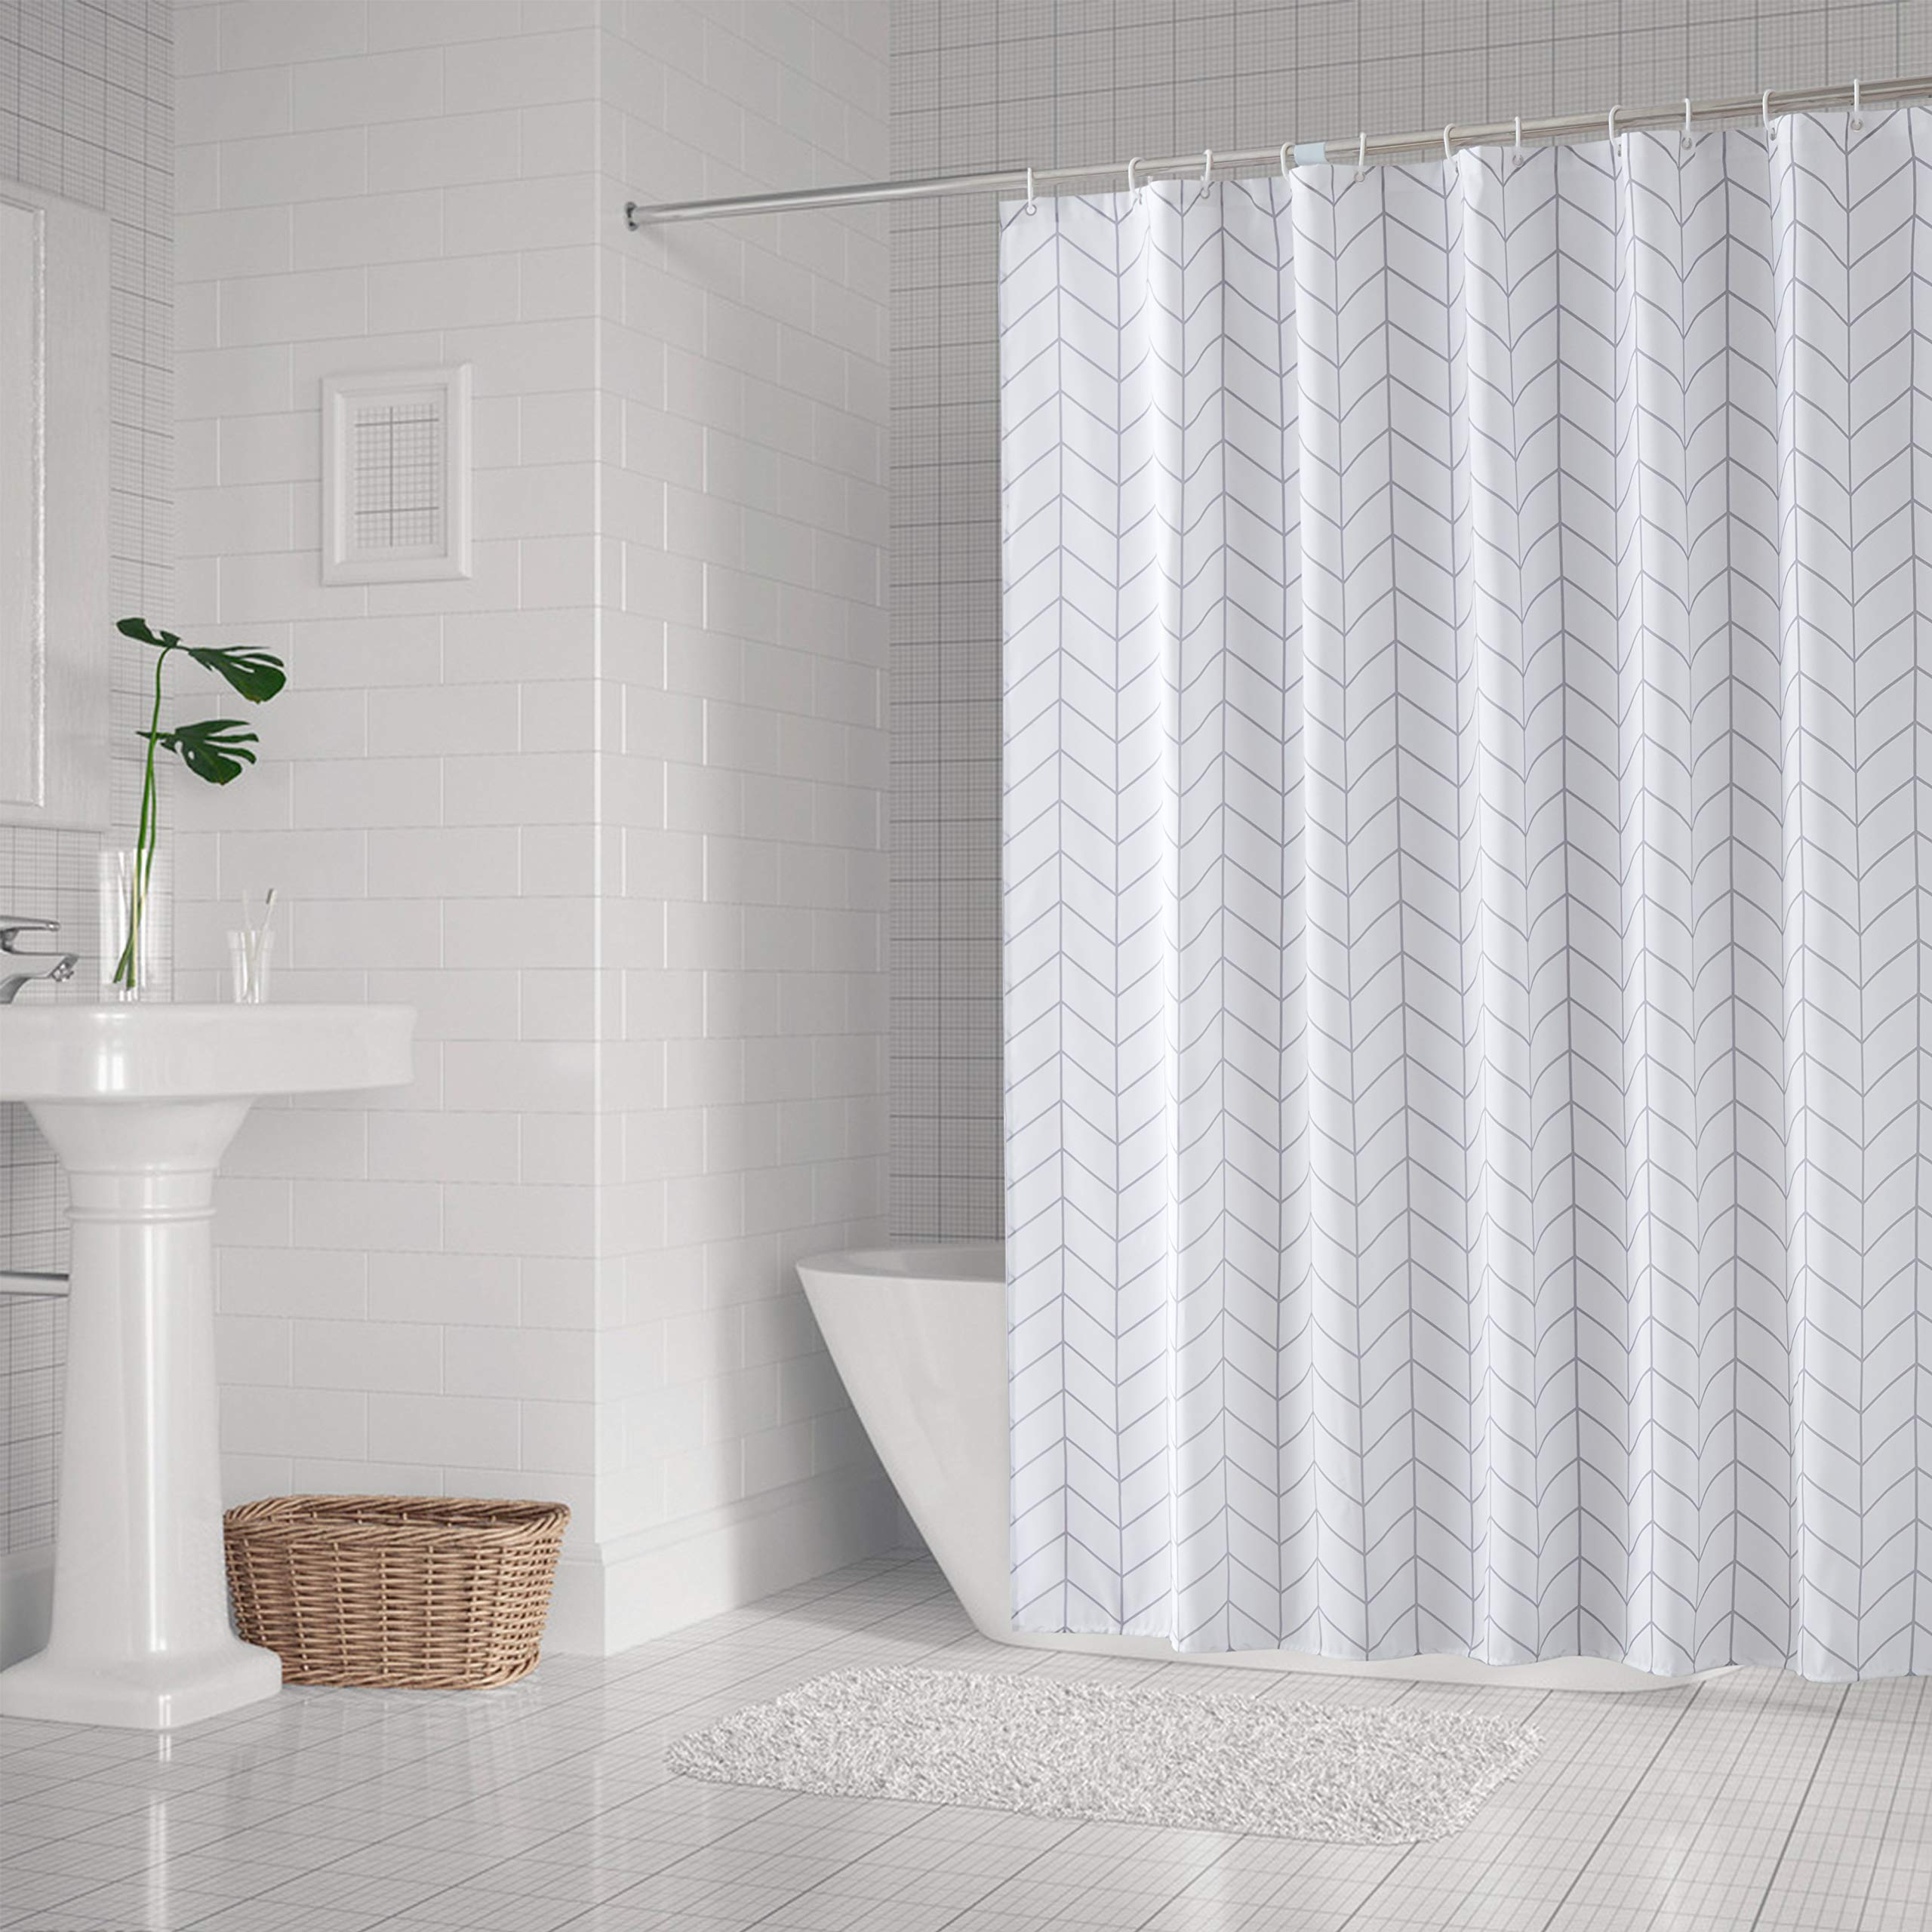 SHU UFANRO Shower Curtain Waterproof Fabric Polyester Bathroom Shower Curtain Liner with Hooks